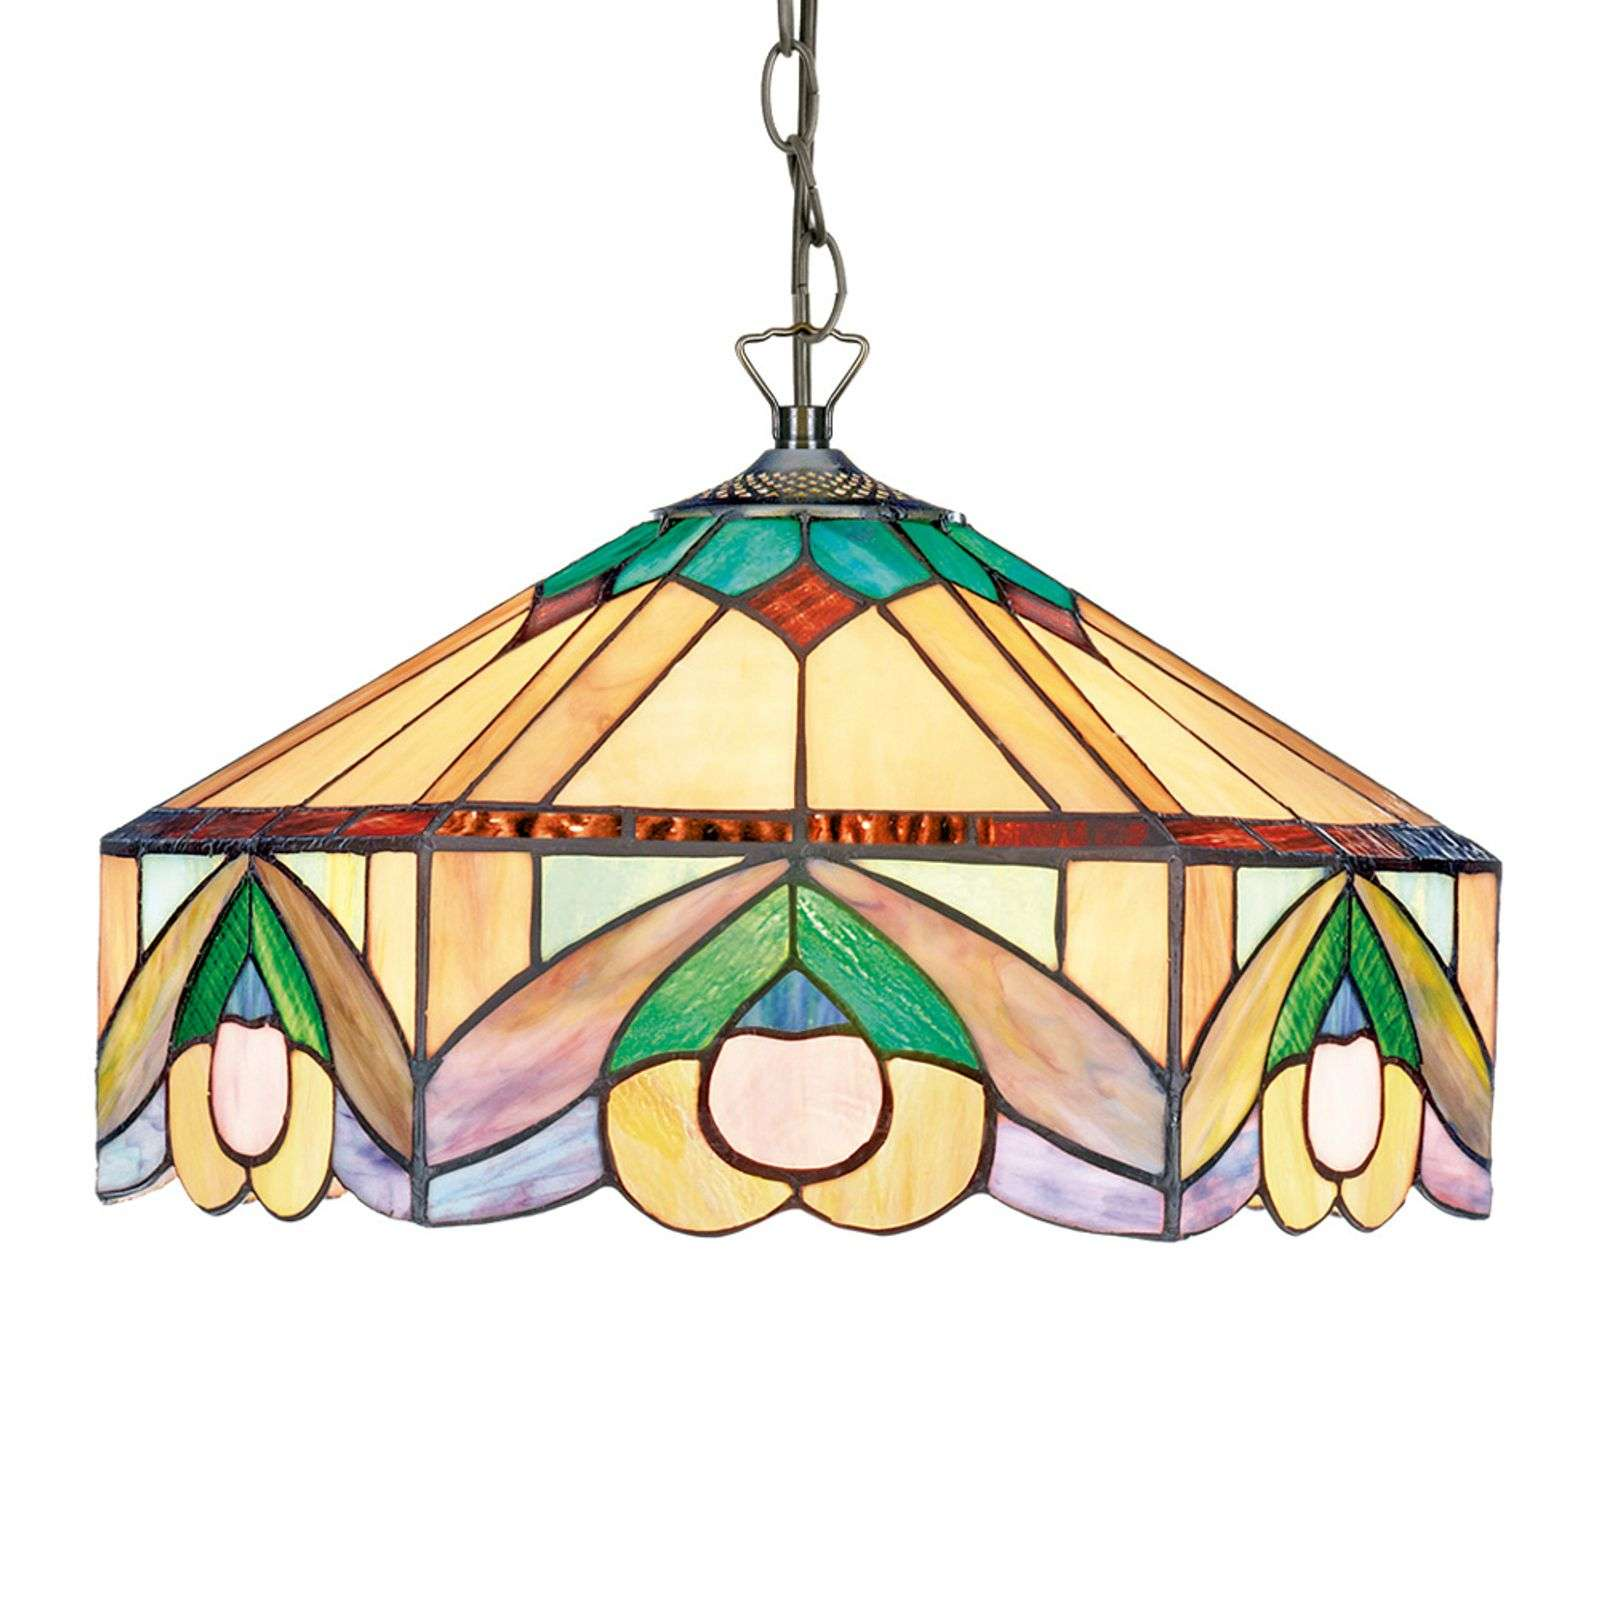 Pendellamp Iwona - in Tiffany design